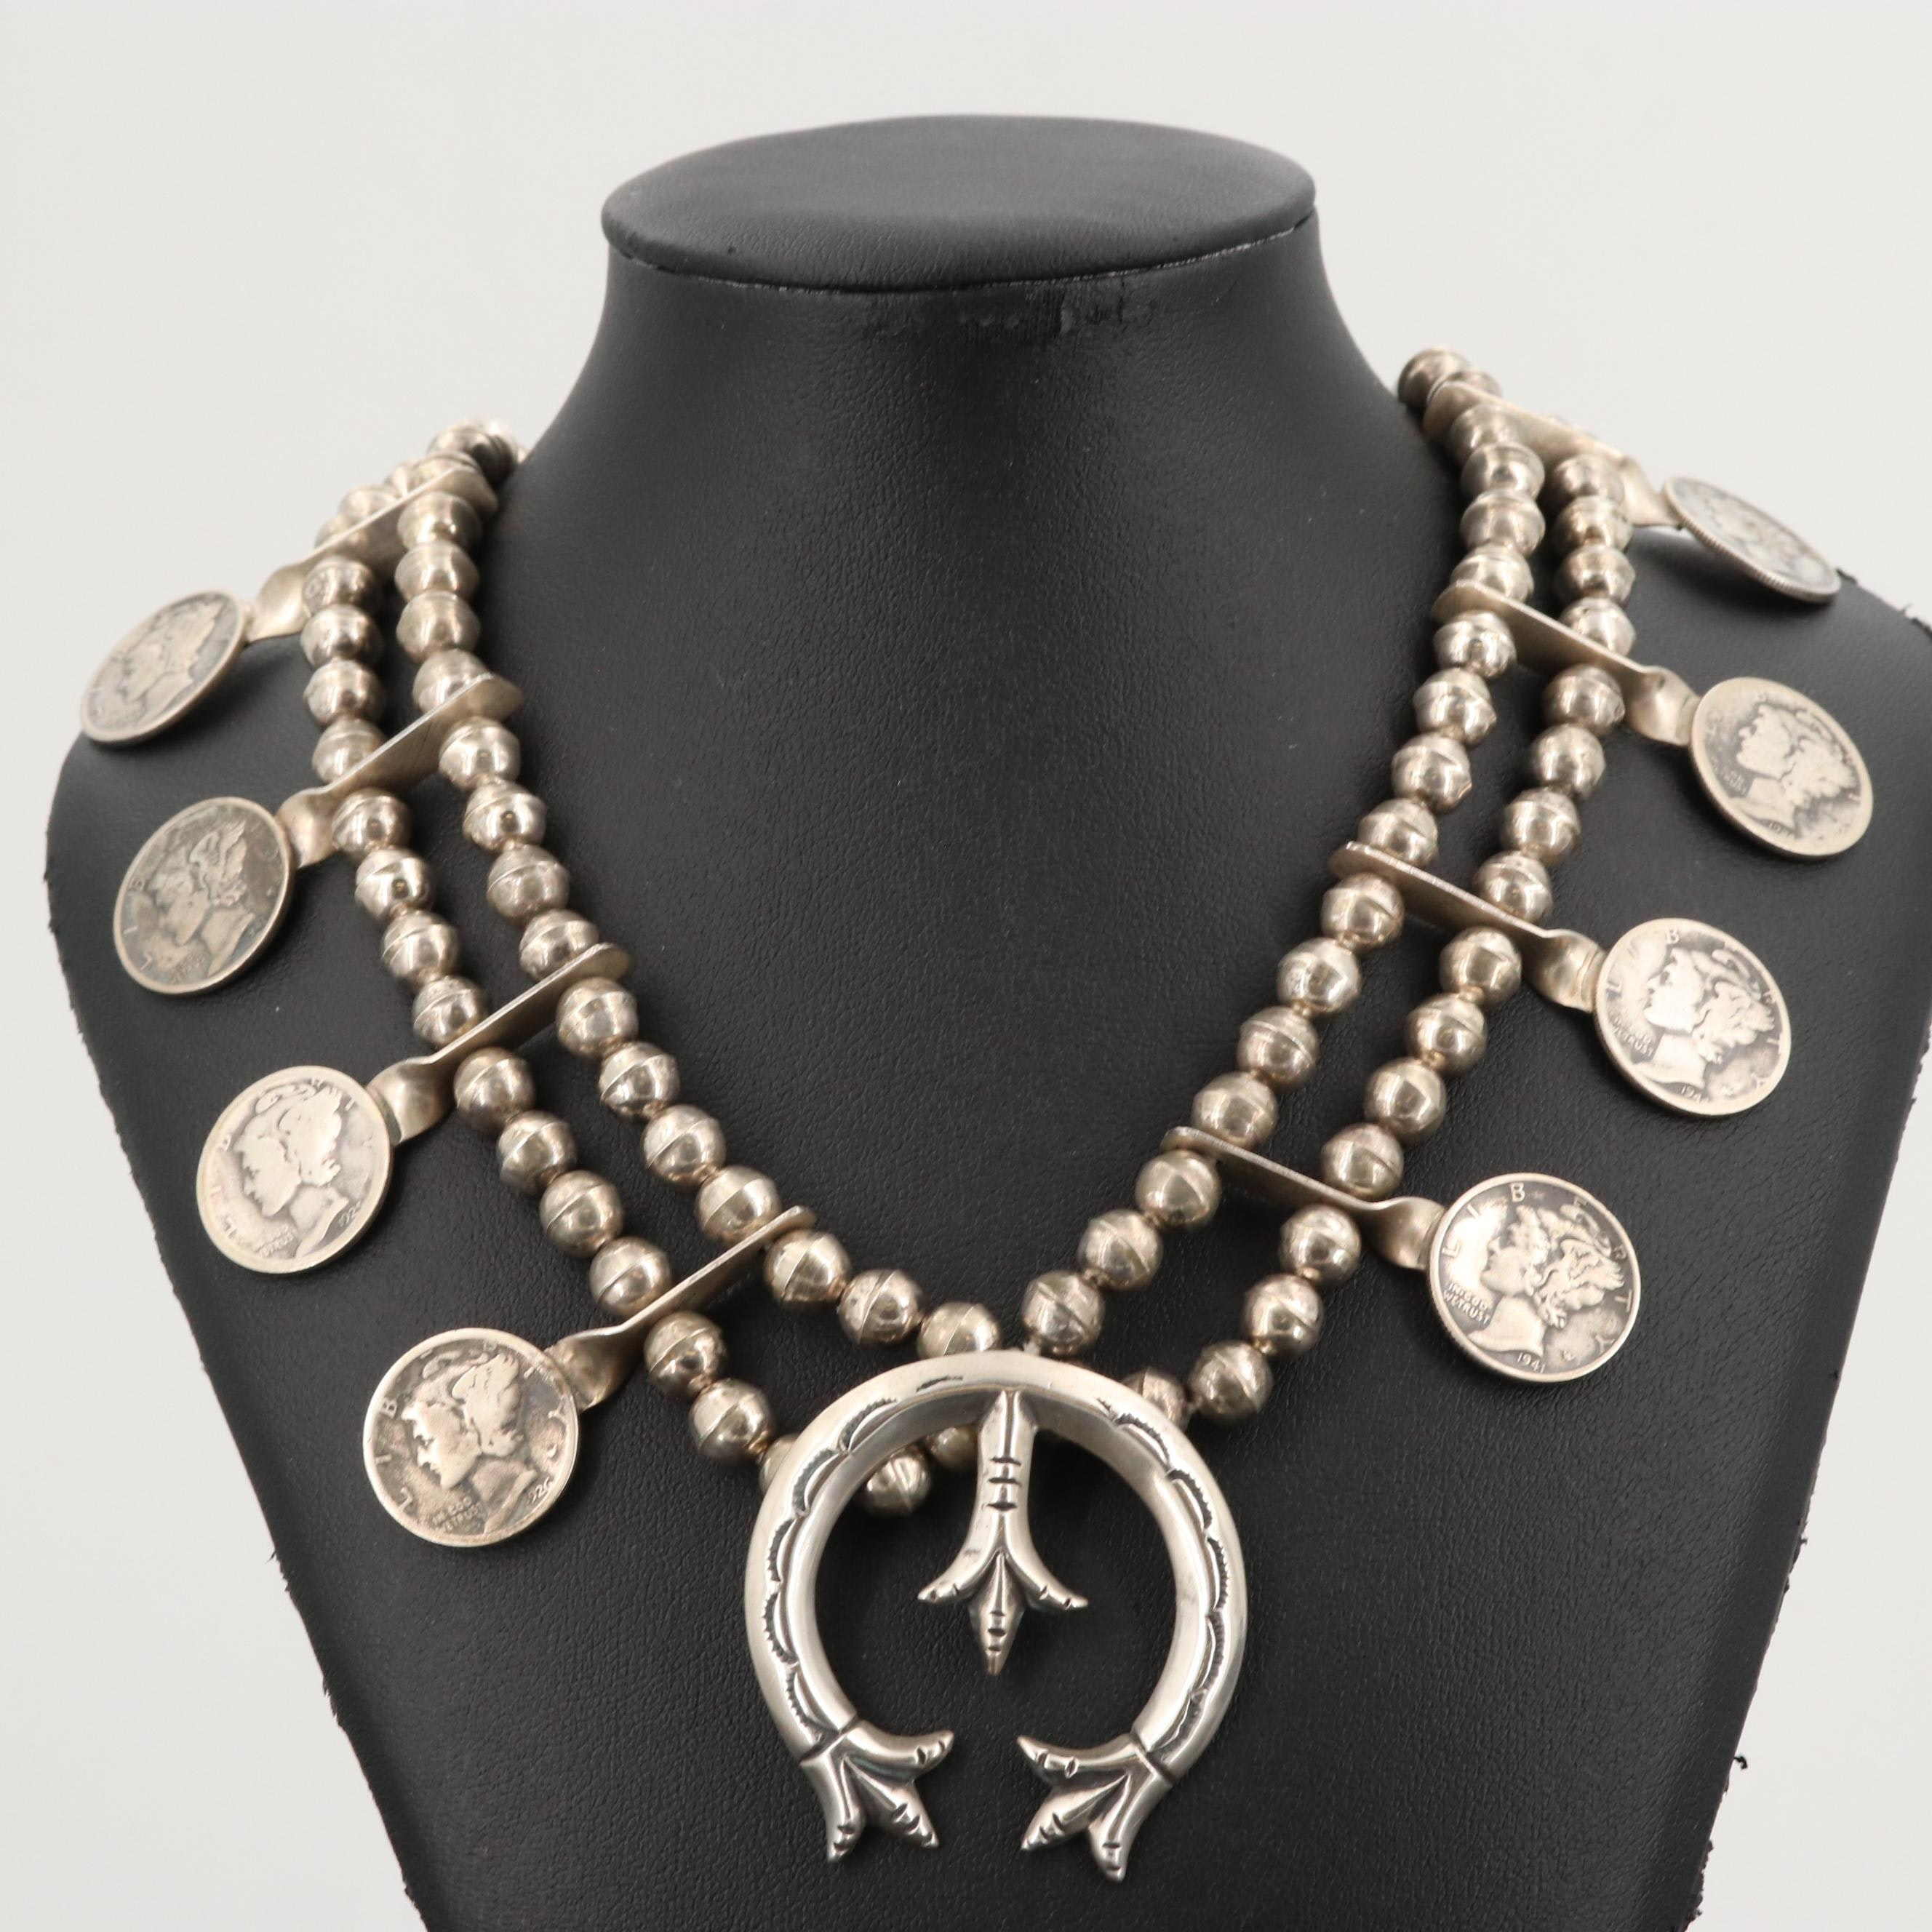 Southwestern Style Sterling Naja Pendant Necklace with Mercury Silver Dollars